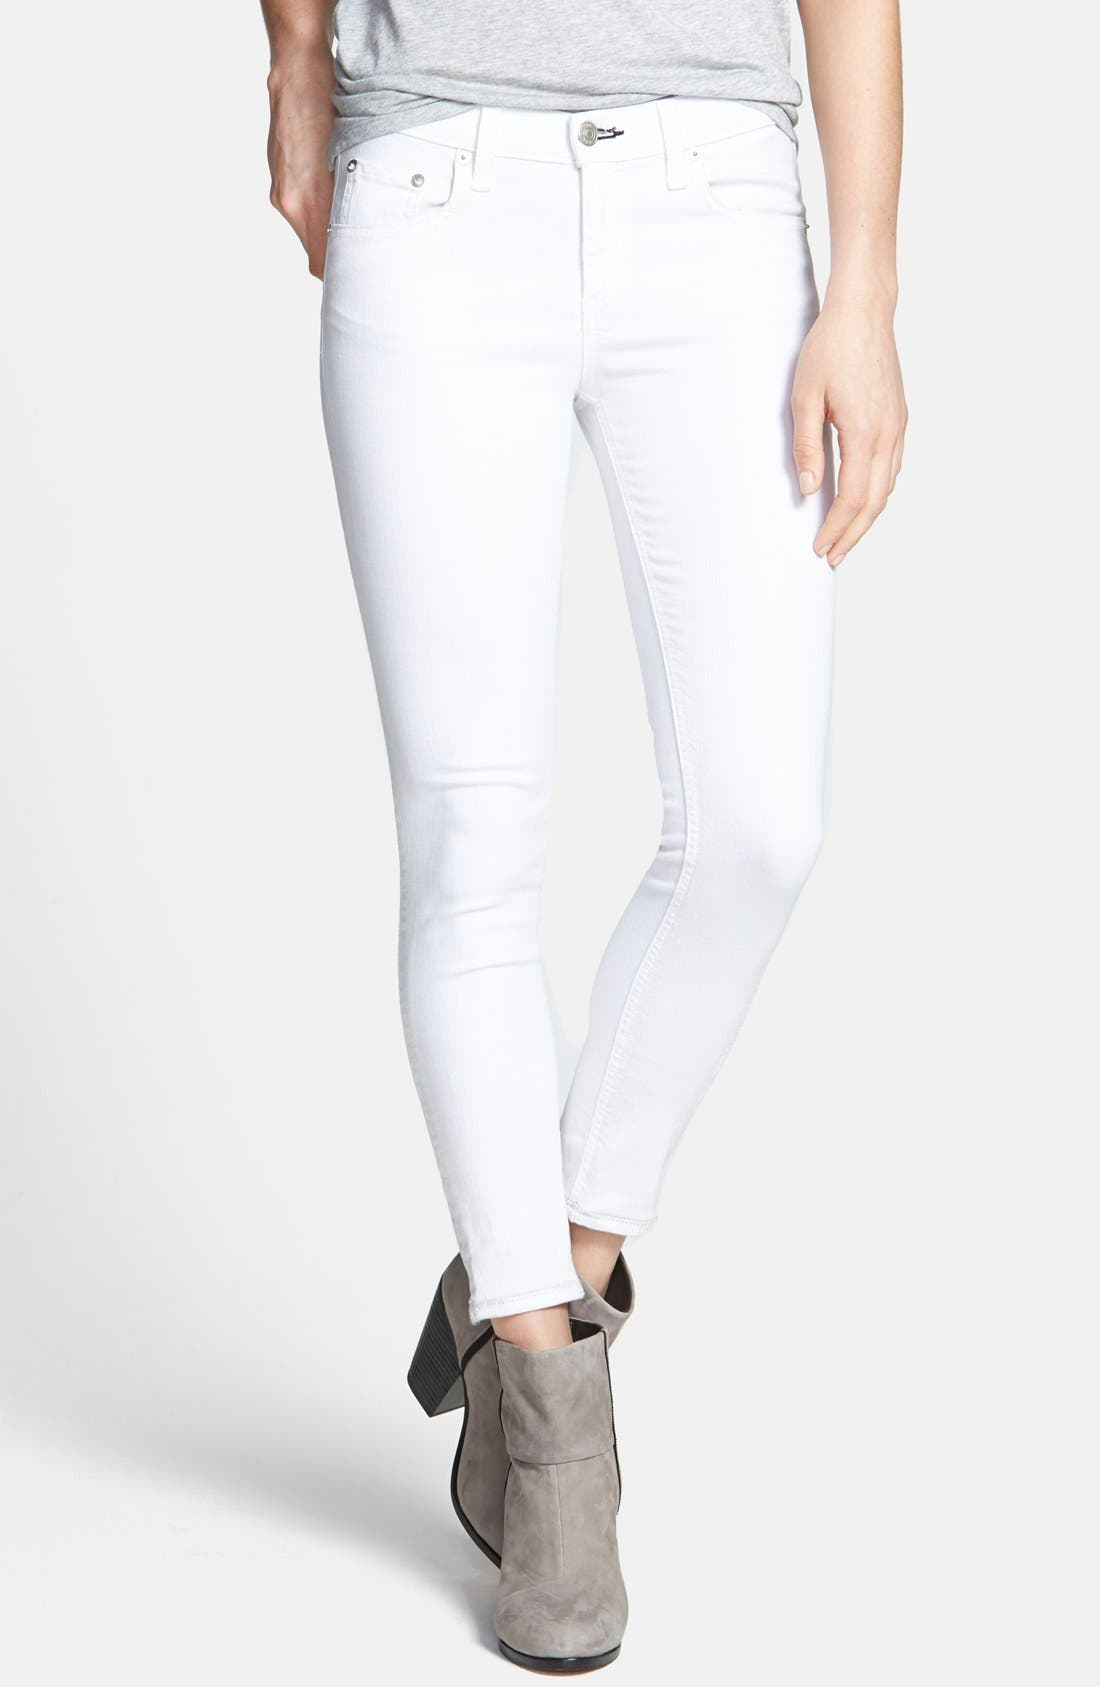 Alternate Image 1 Selected - rag & bone/JEAN 'The Skinny' Crop Jeans (Bright White)